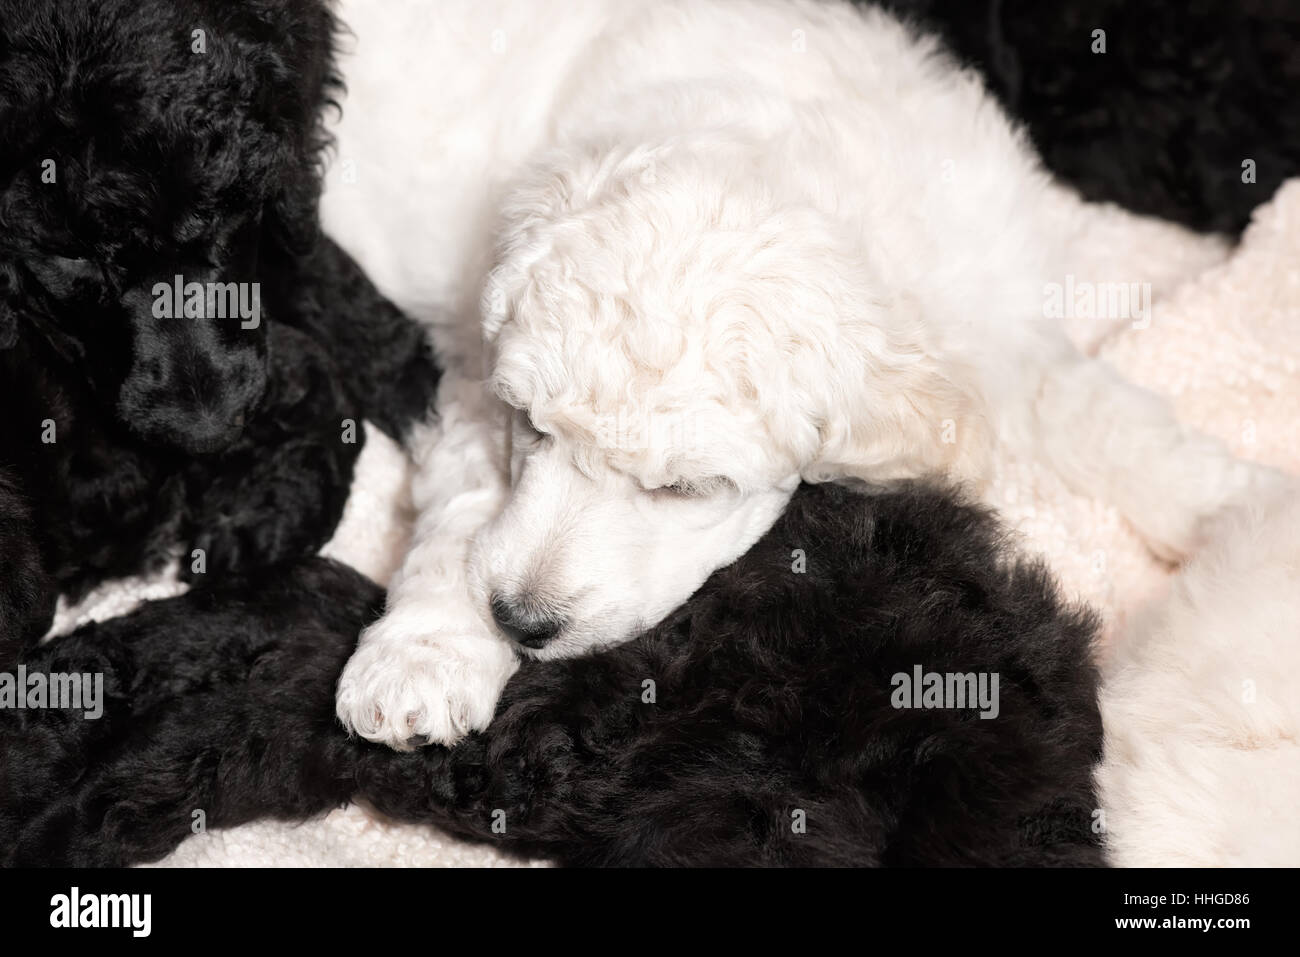 Black Standard Poodle Stock Photos & Black Standard Poodle Stock